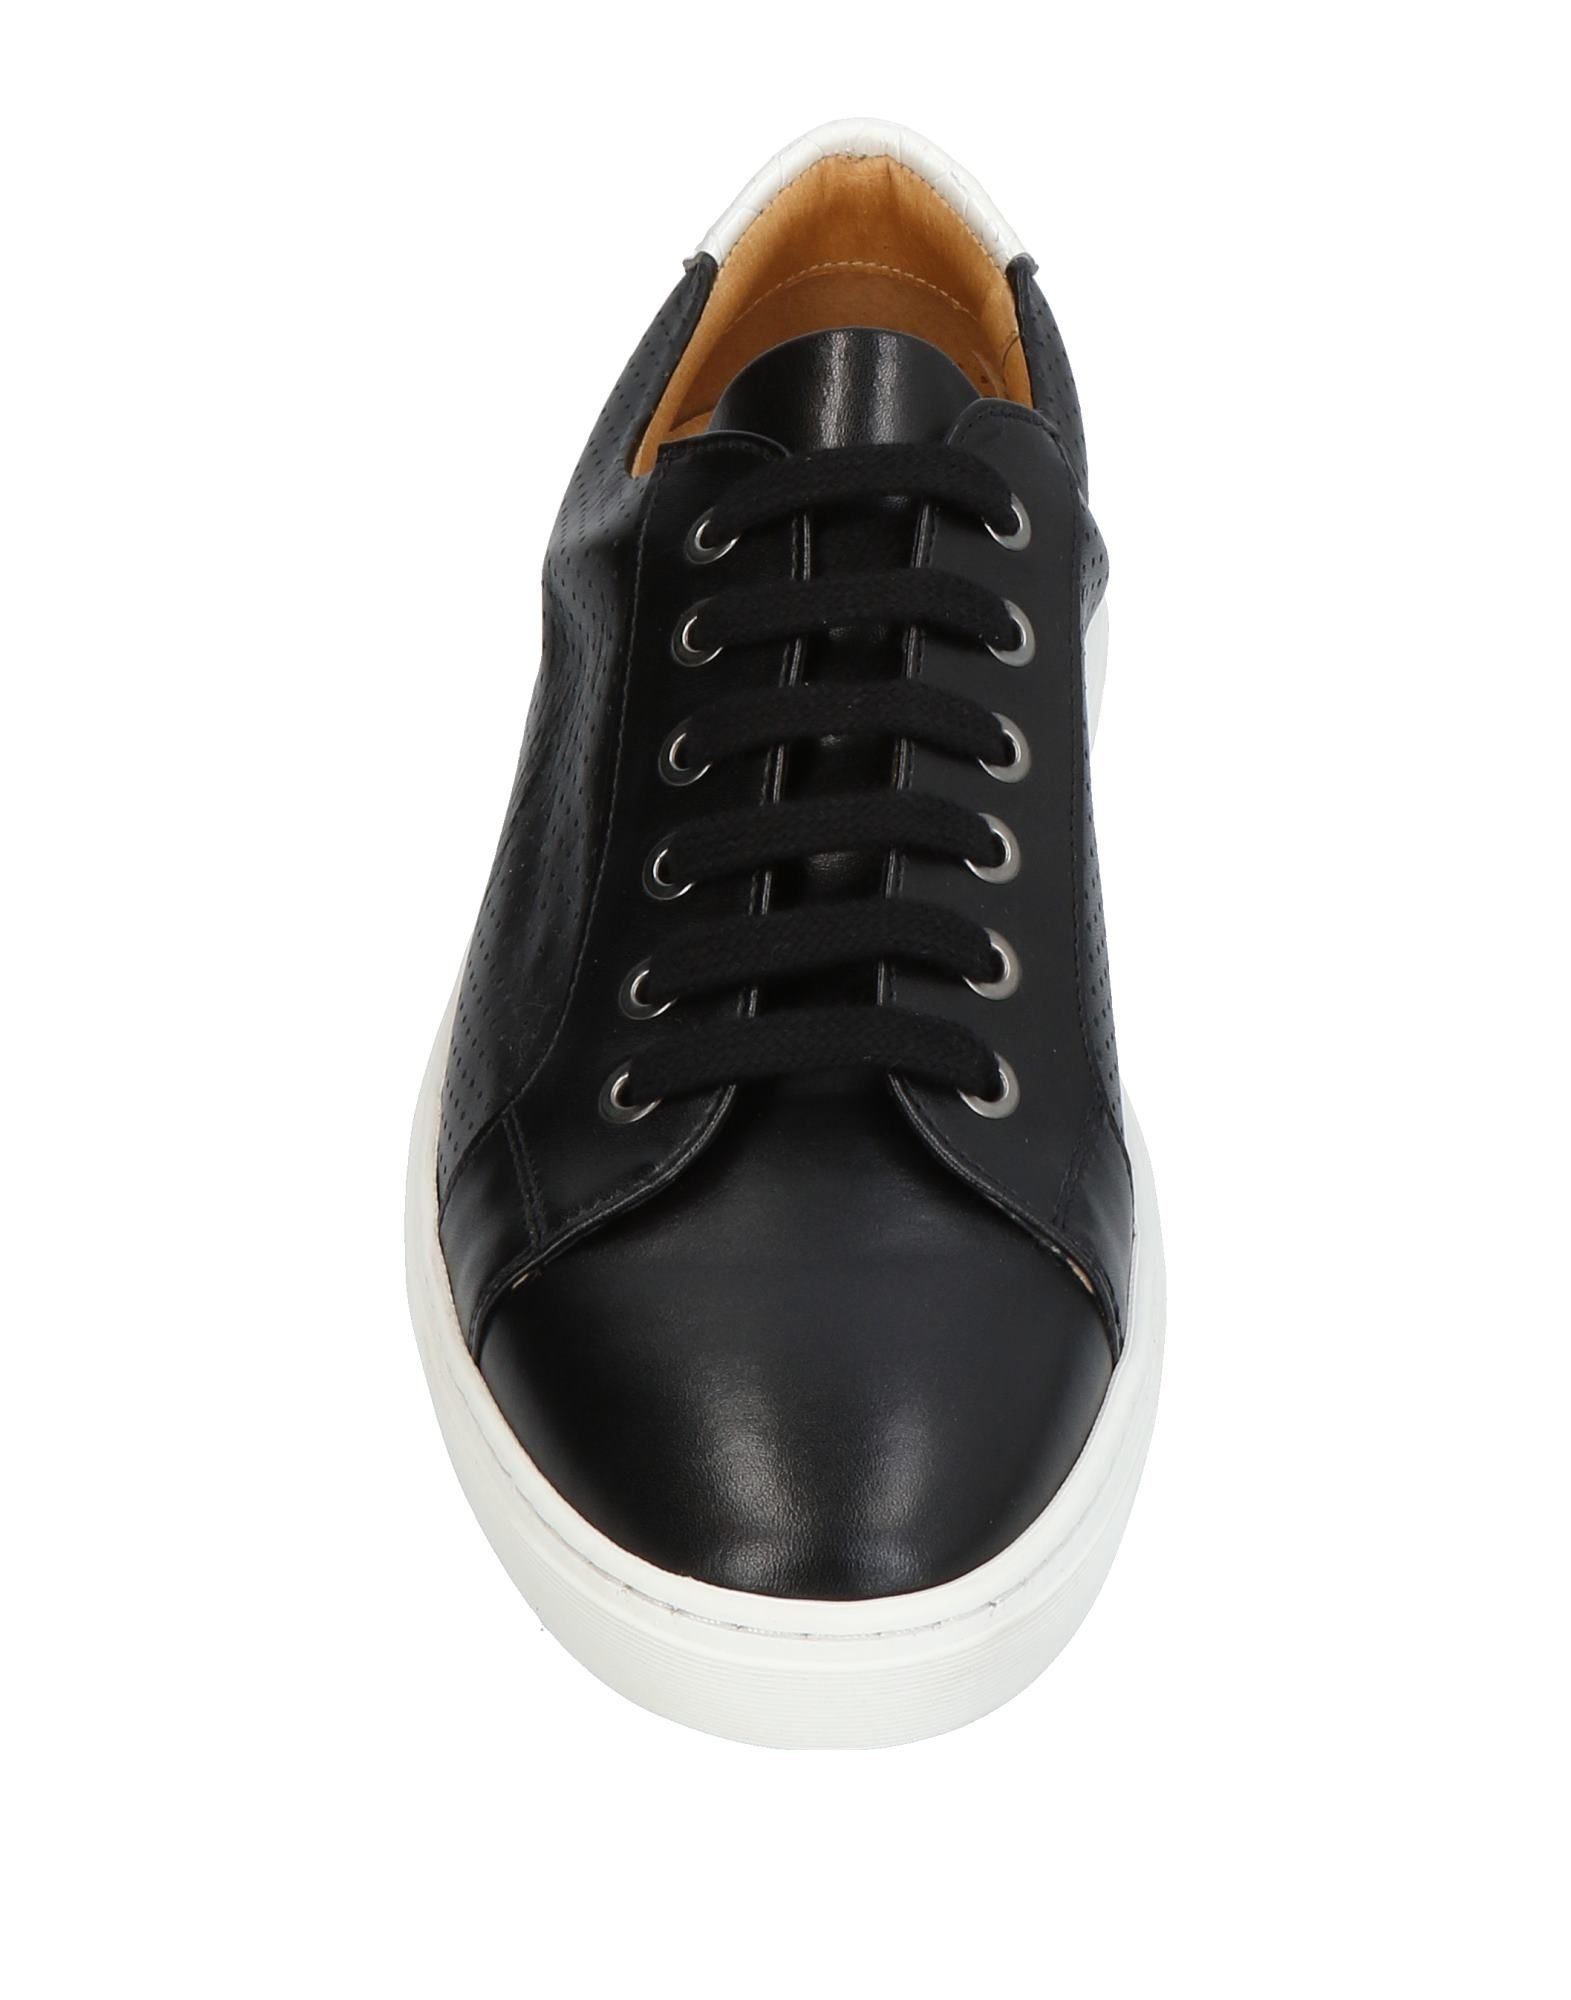 Profession: Profession: Profession: Bottier Sneakers Herren  11437786LX Neue Schuhe 039a0c